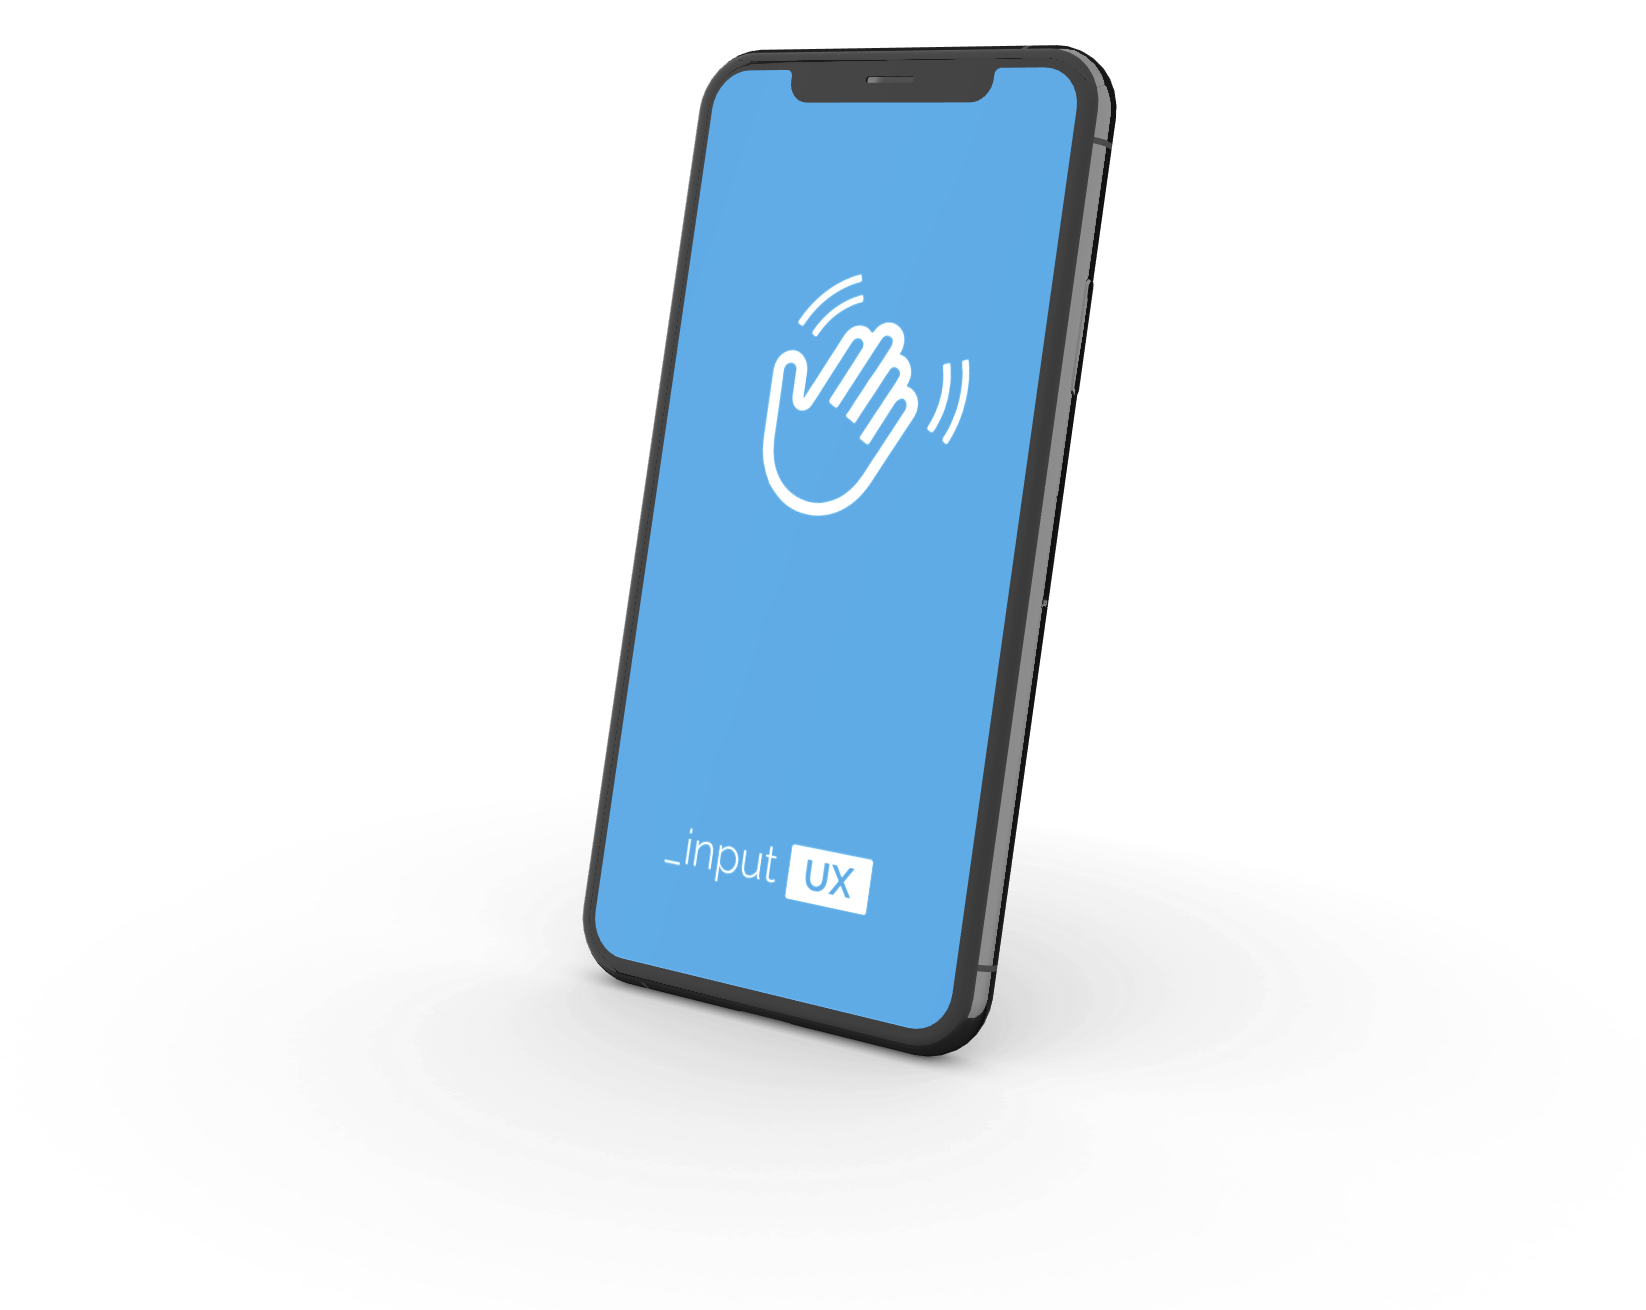 Mobile phone screen with illustrated hand waving